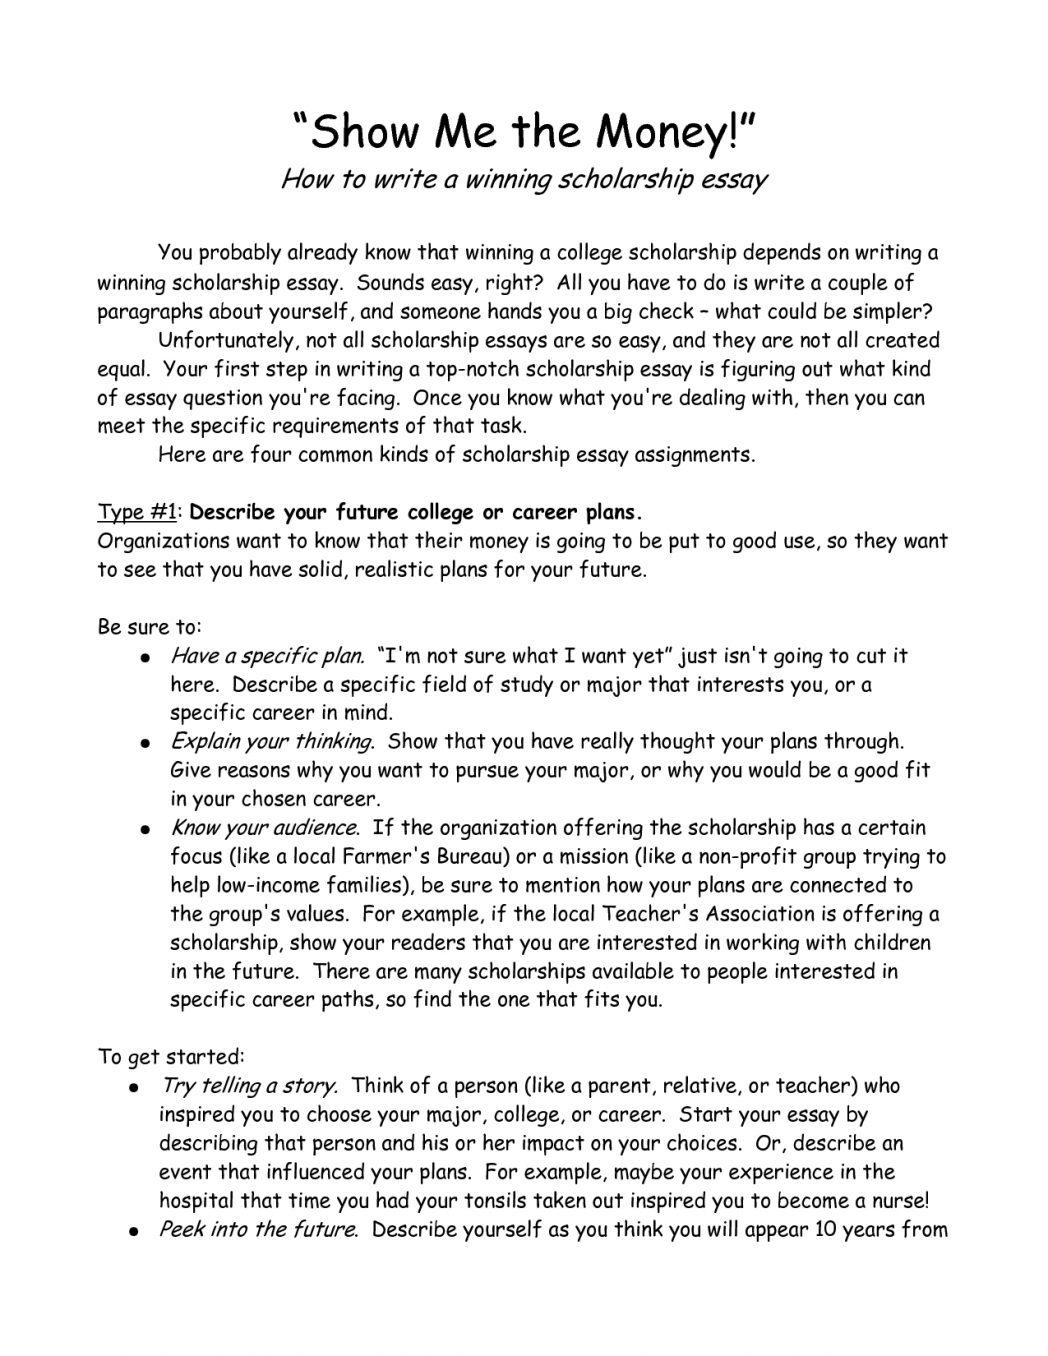 004 Essay Example Scholarships For College Students High School Student Resume Template No Experience Luxury Assignment Scholarship Examples Printables Corner Astounding 2019 2017 2018 Full